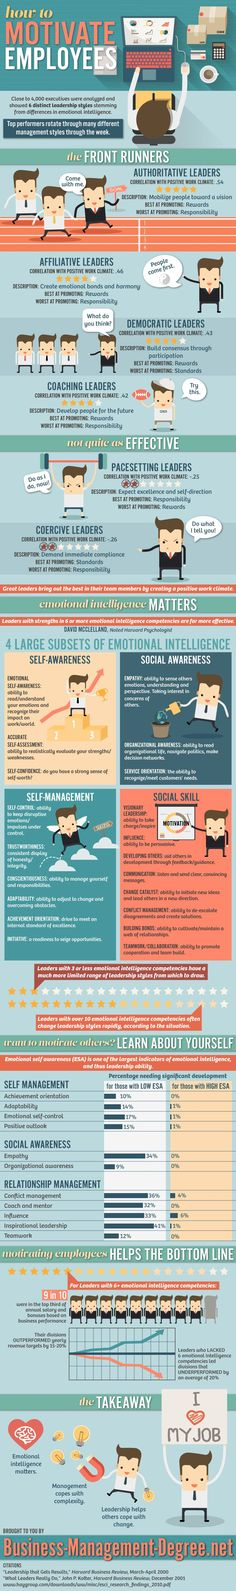 HOW TO KEEP YOUR EMPLOYEES MOTIVATED [INFOGRAPHIC]